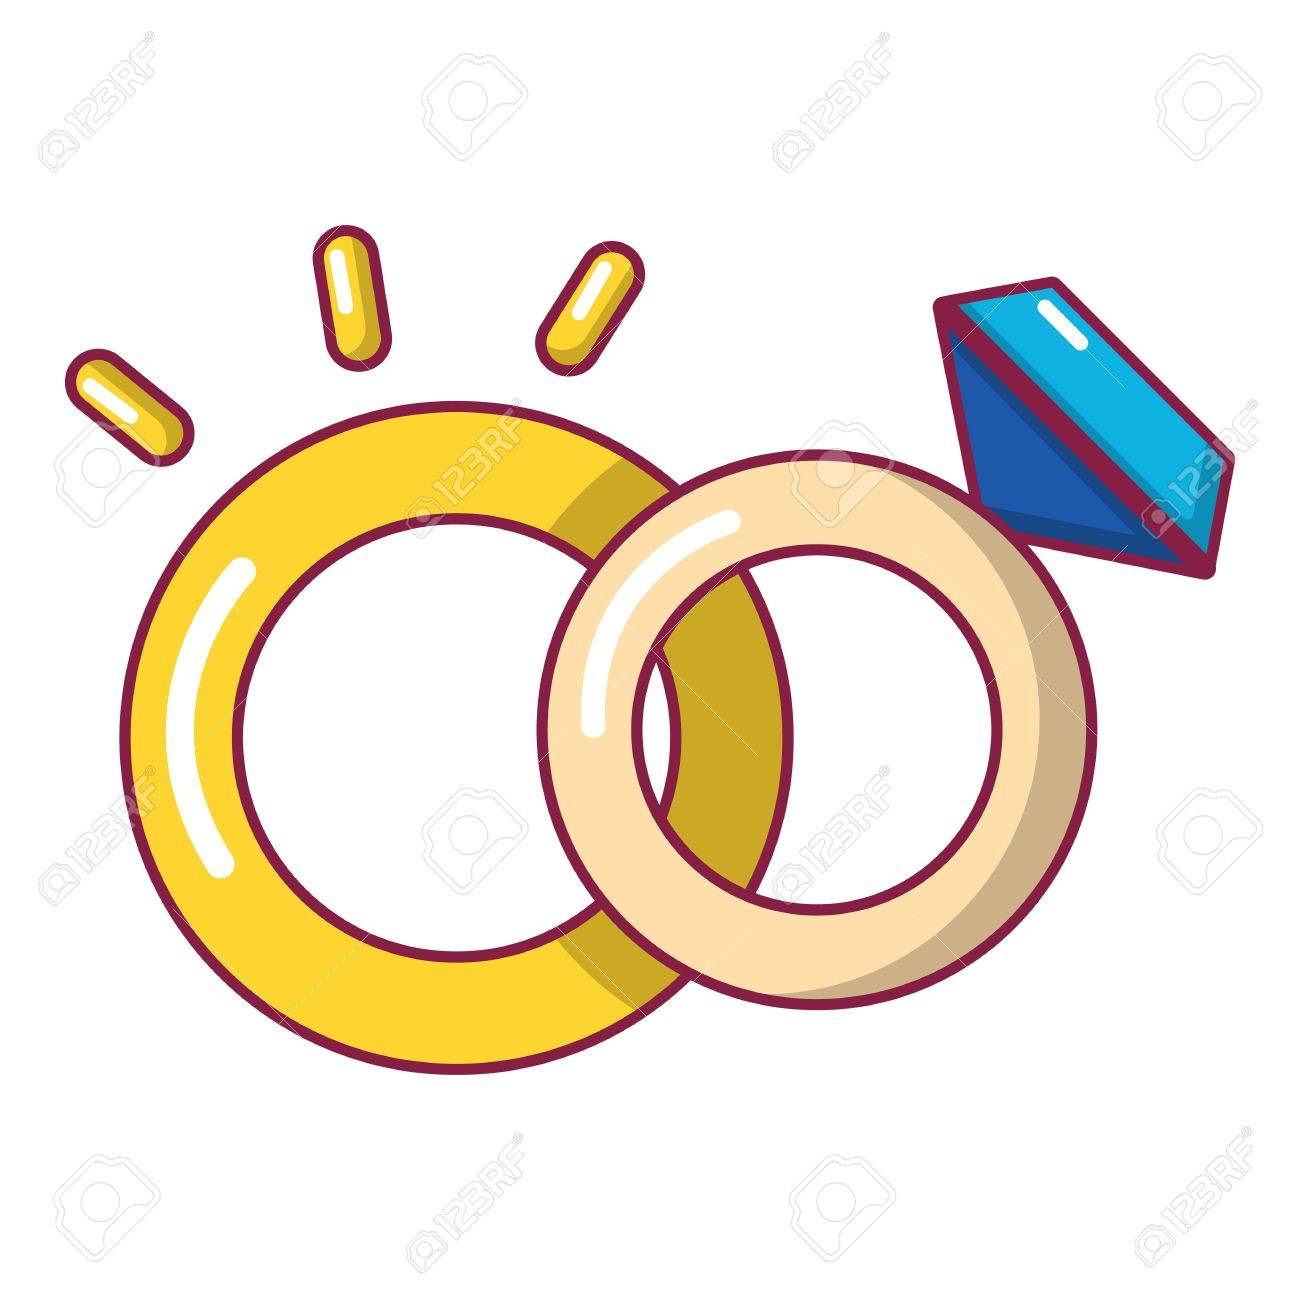 Wedding Rings Icon Cartoon Style Royalty Free Cliparts Vectors